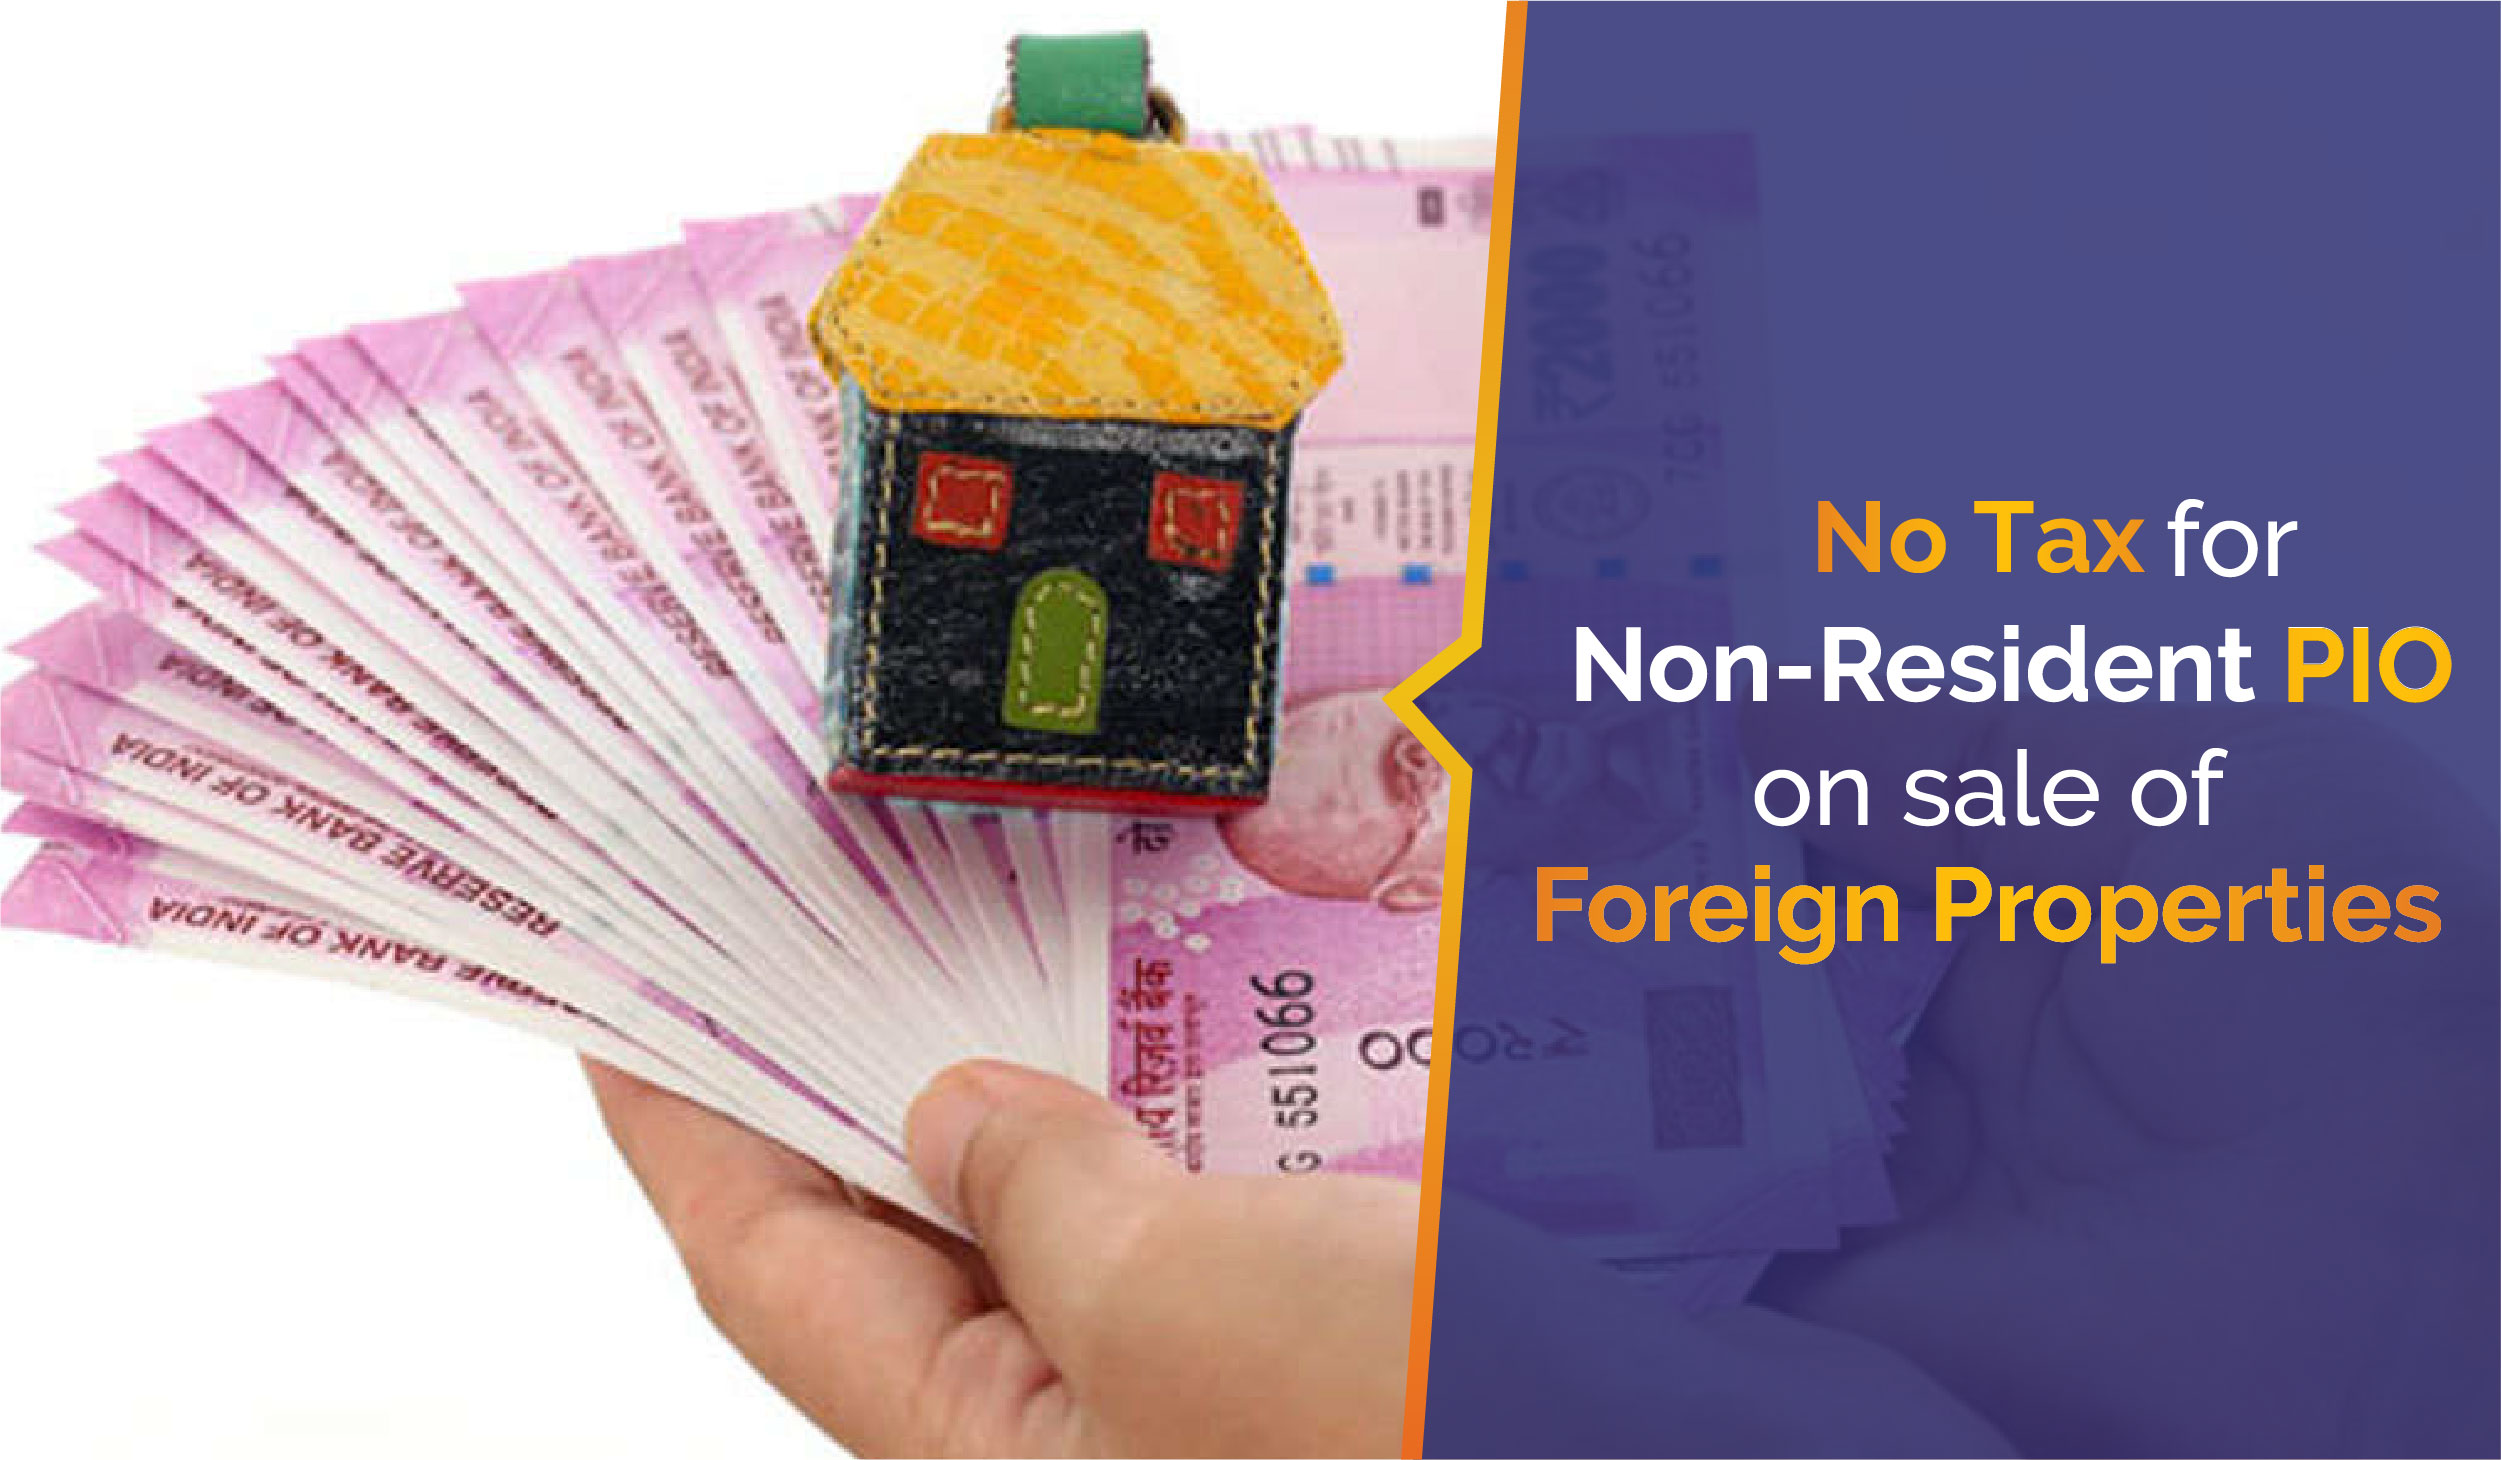 No Tax for non-resident PIO on sale of foreign properties